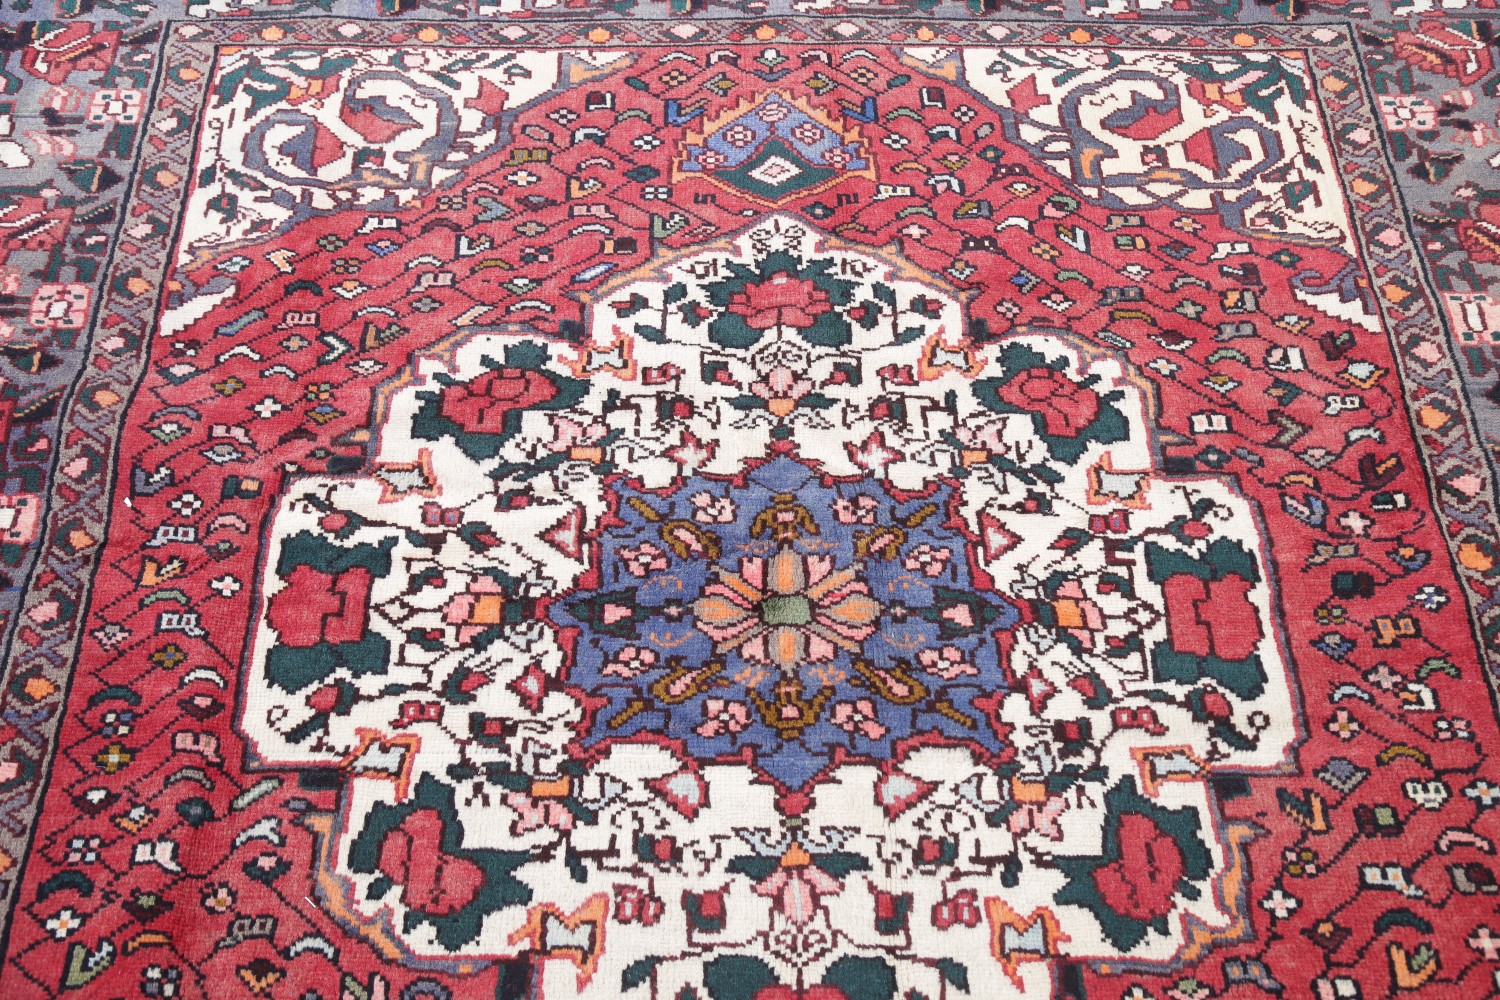 Collectors' Piece Antique Double Medallion Floral Pattern Pictorial Tribal Rug Antiques